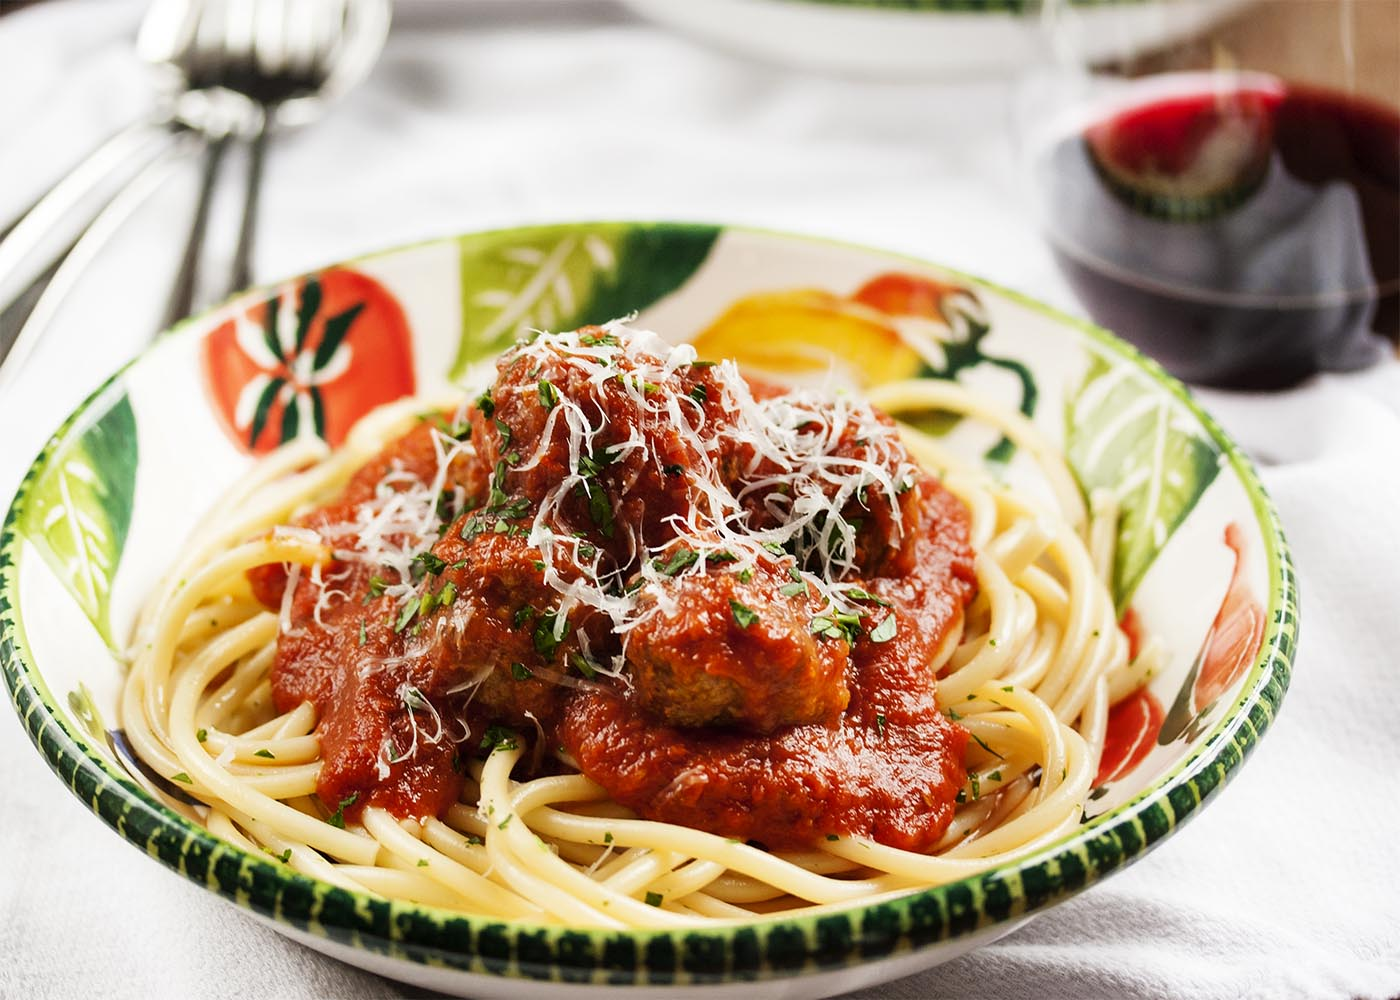 Braised Italian Meatballs - These classic meatballs from my Italian-American kitchen are packed with flavor and so tender from a long braising that they just about melt in your mouth. | justalittlebitofbacon.com